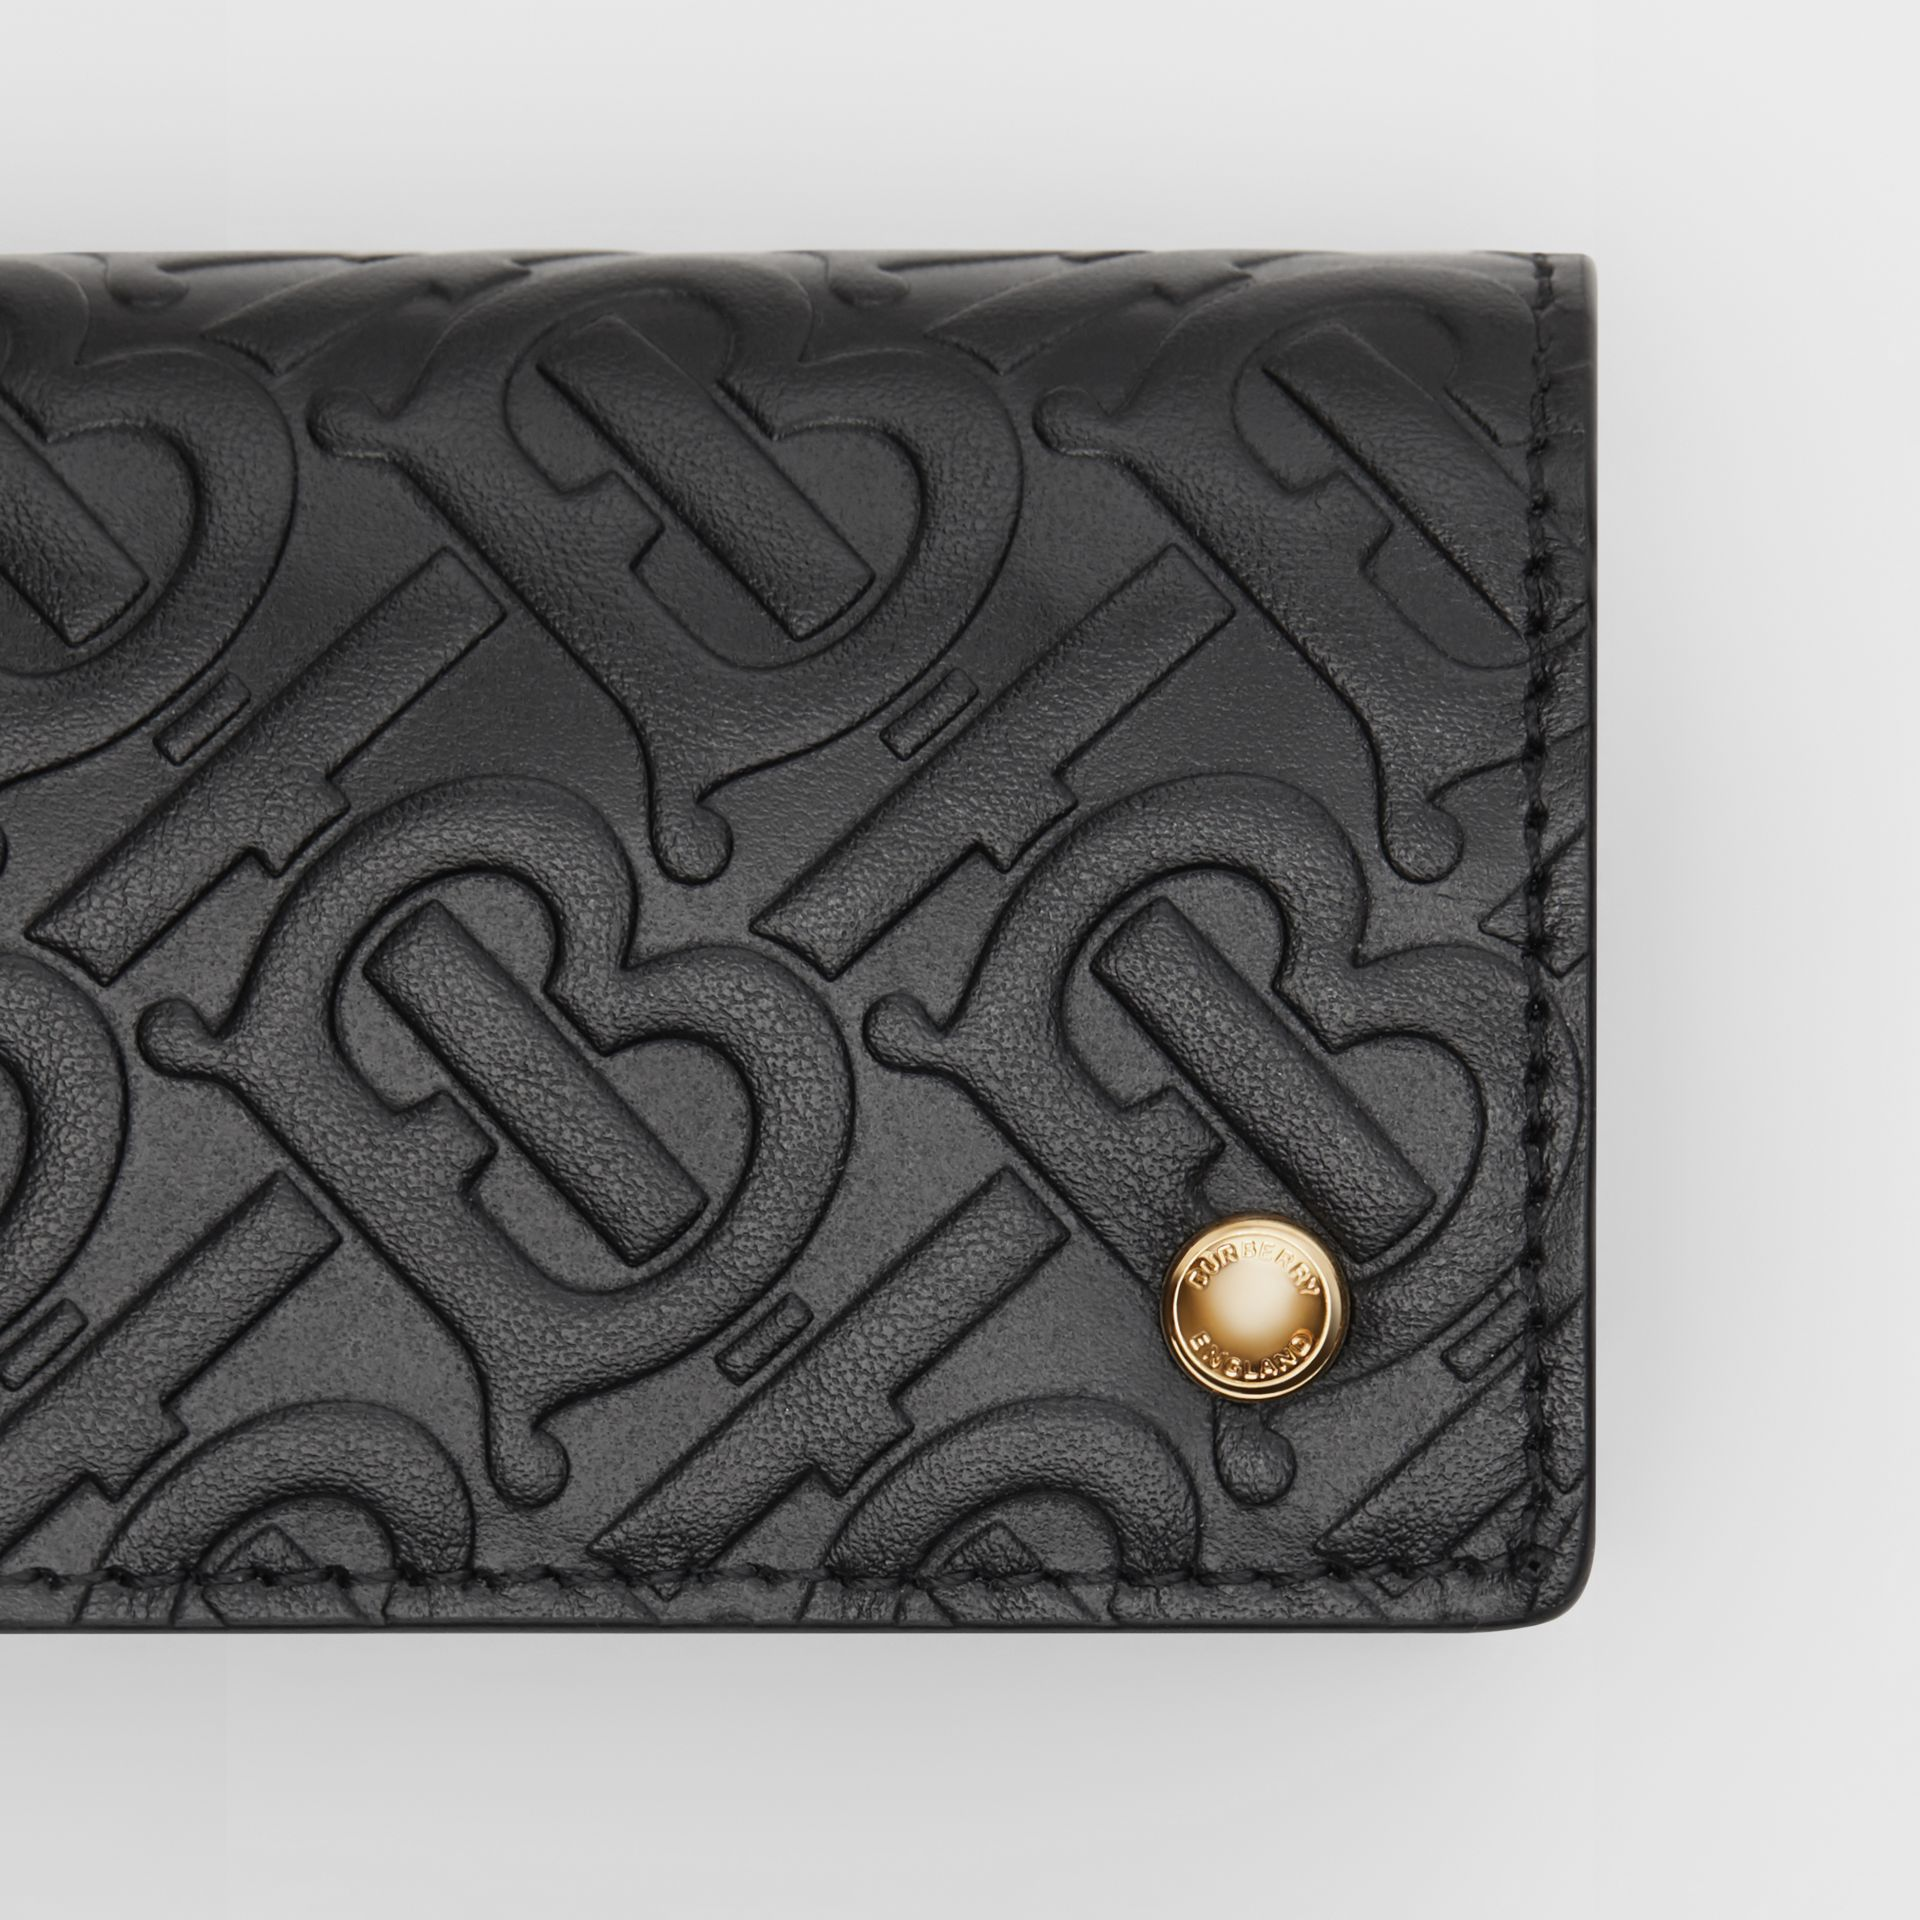 Monogram Leather Card Case in Black | Burberry - gallery image 1